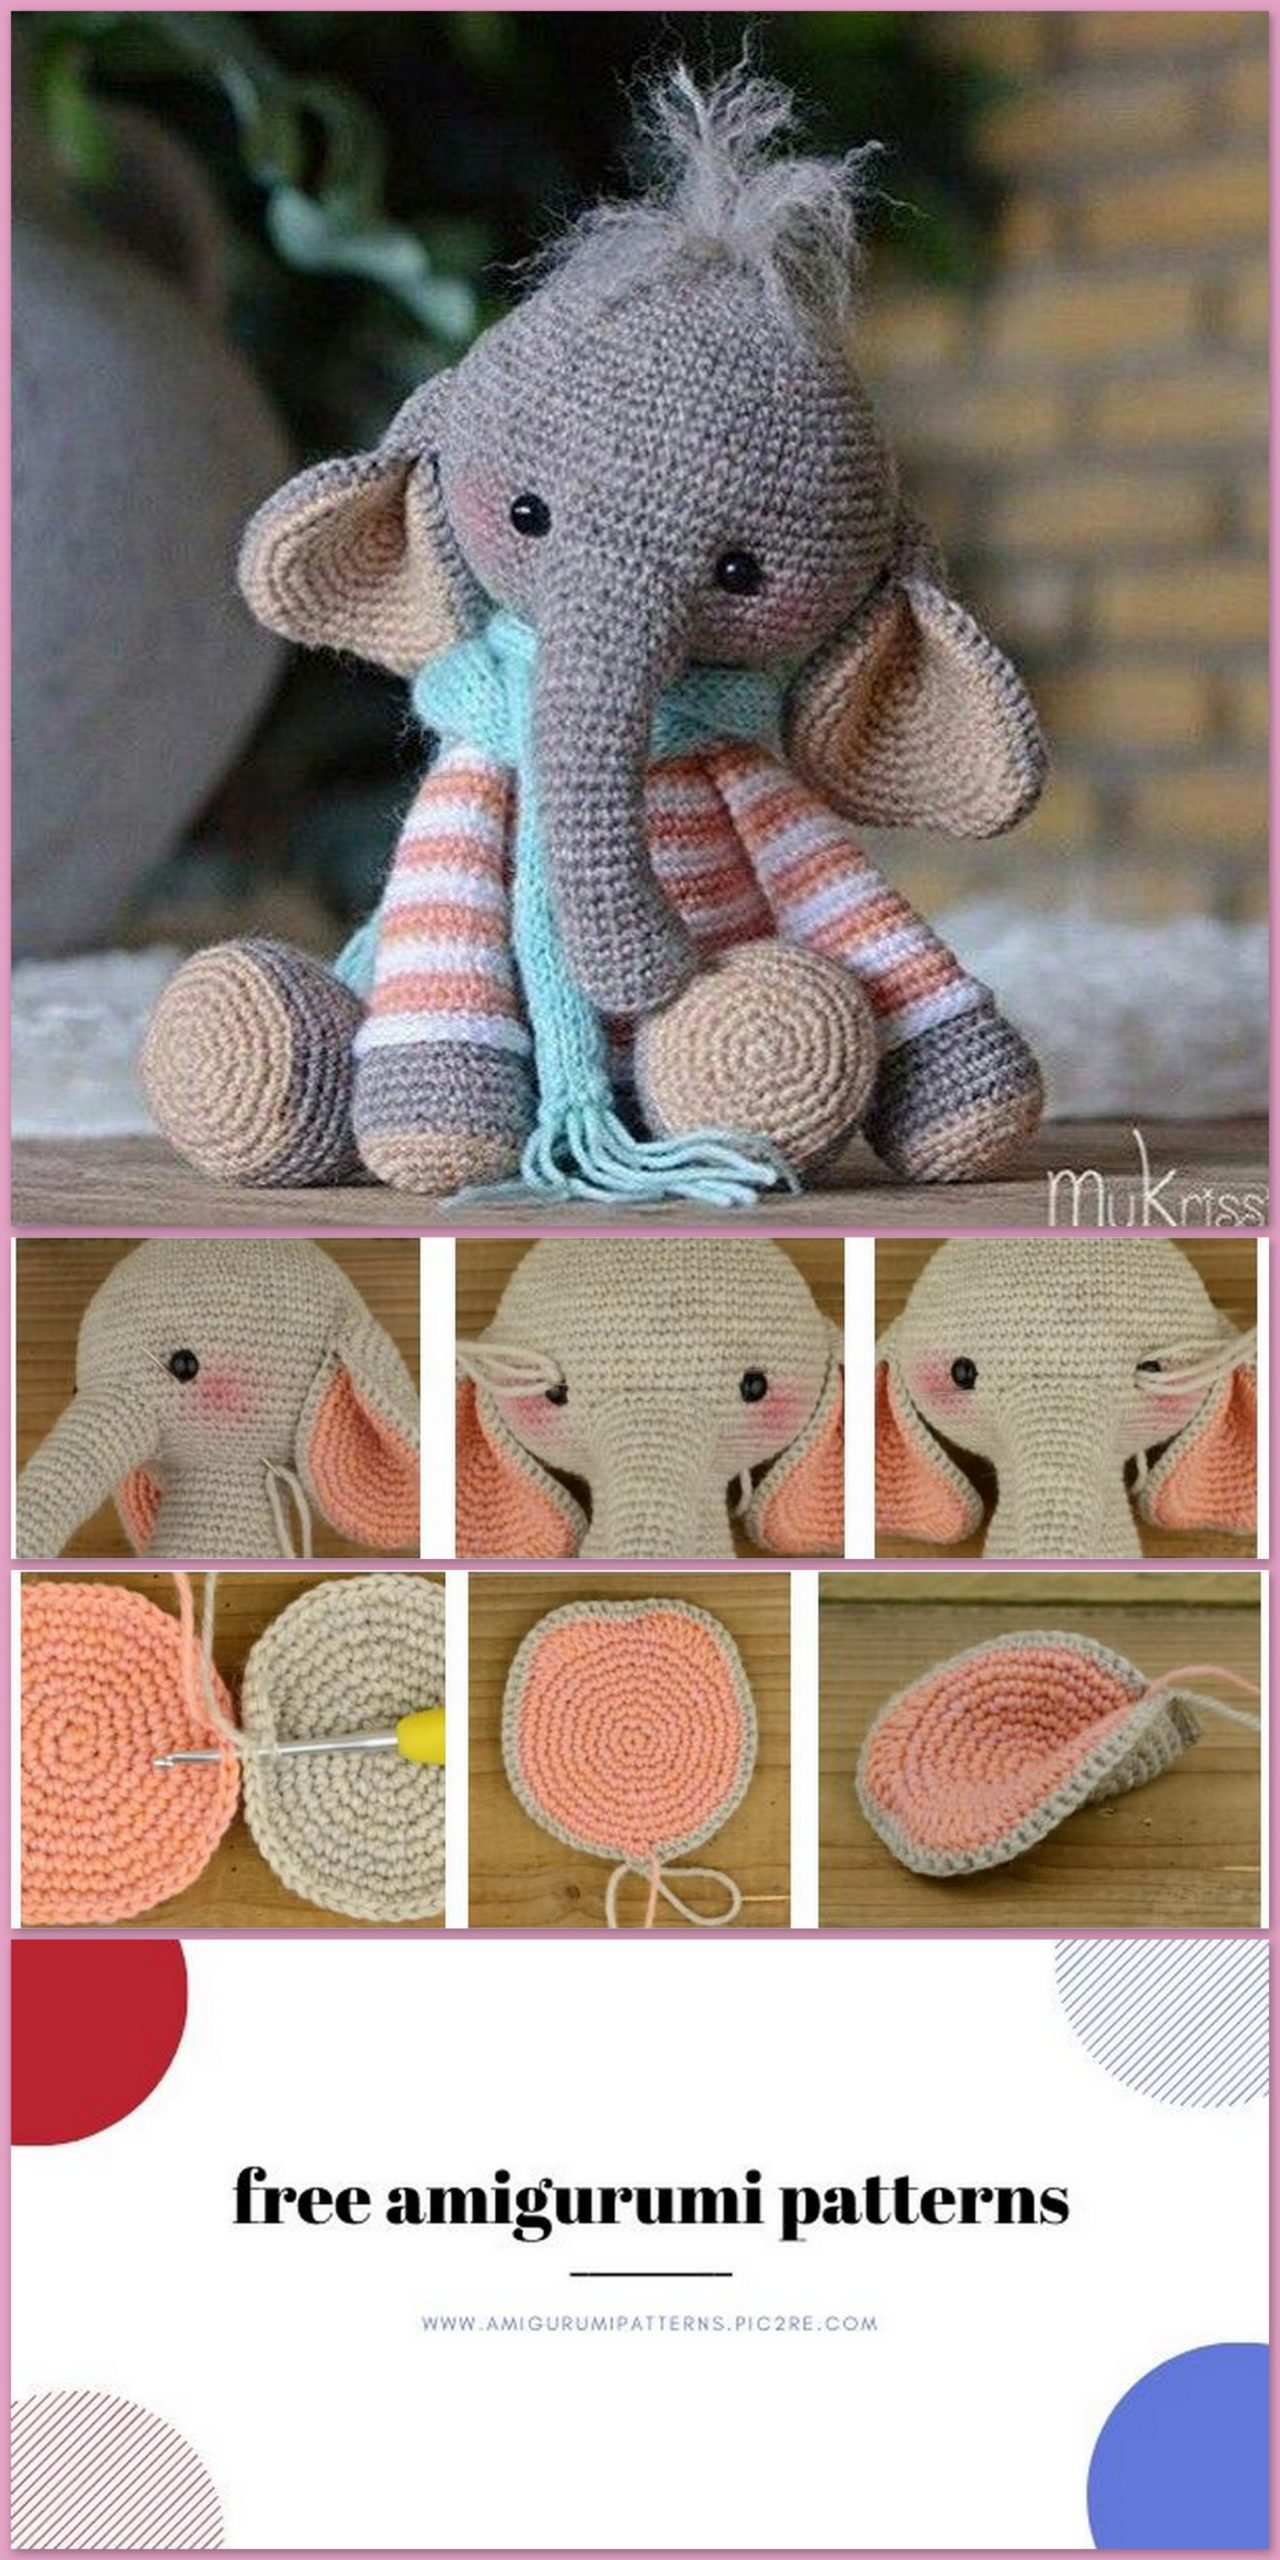 Amigurumi Little Cute Elephant Free Crochet Pattern - Amigurumi ... | 2560x1280